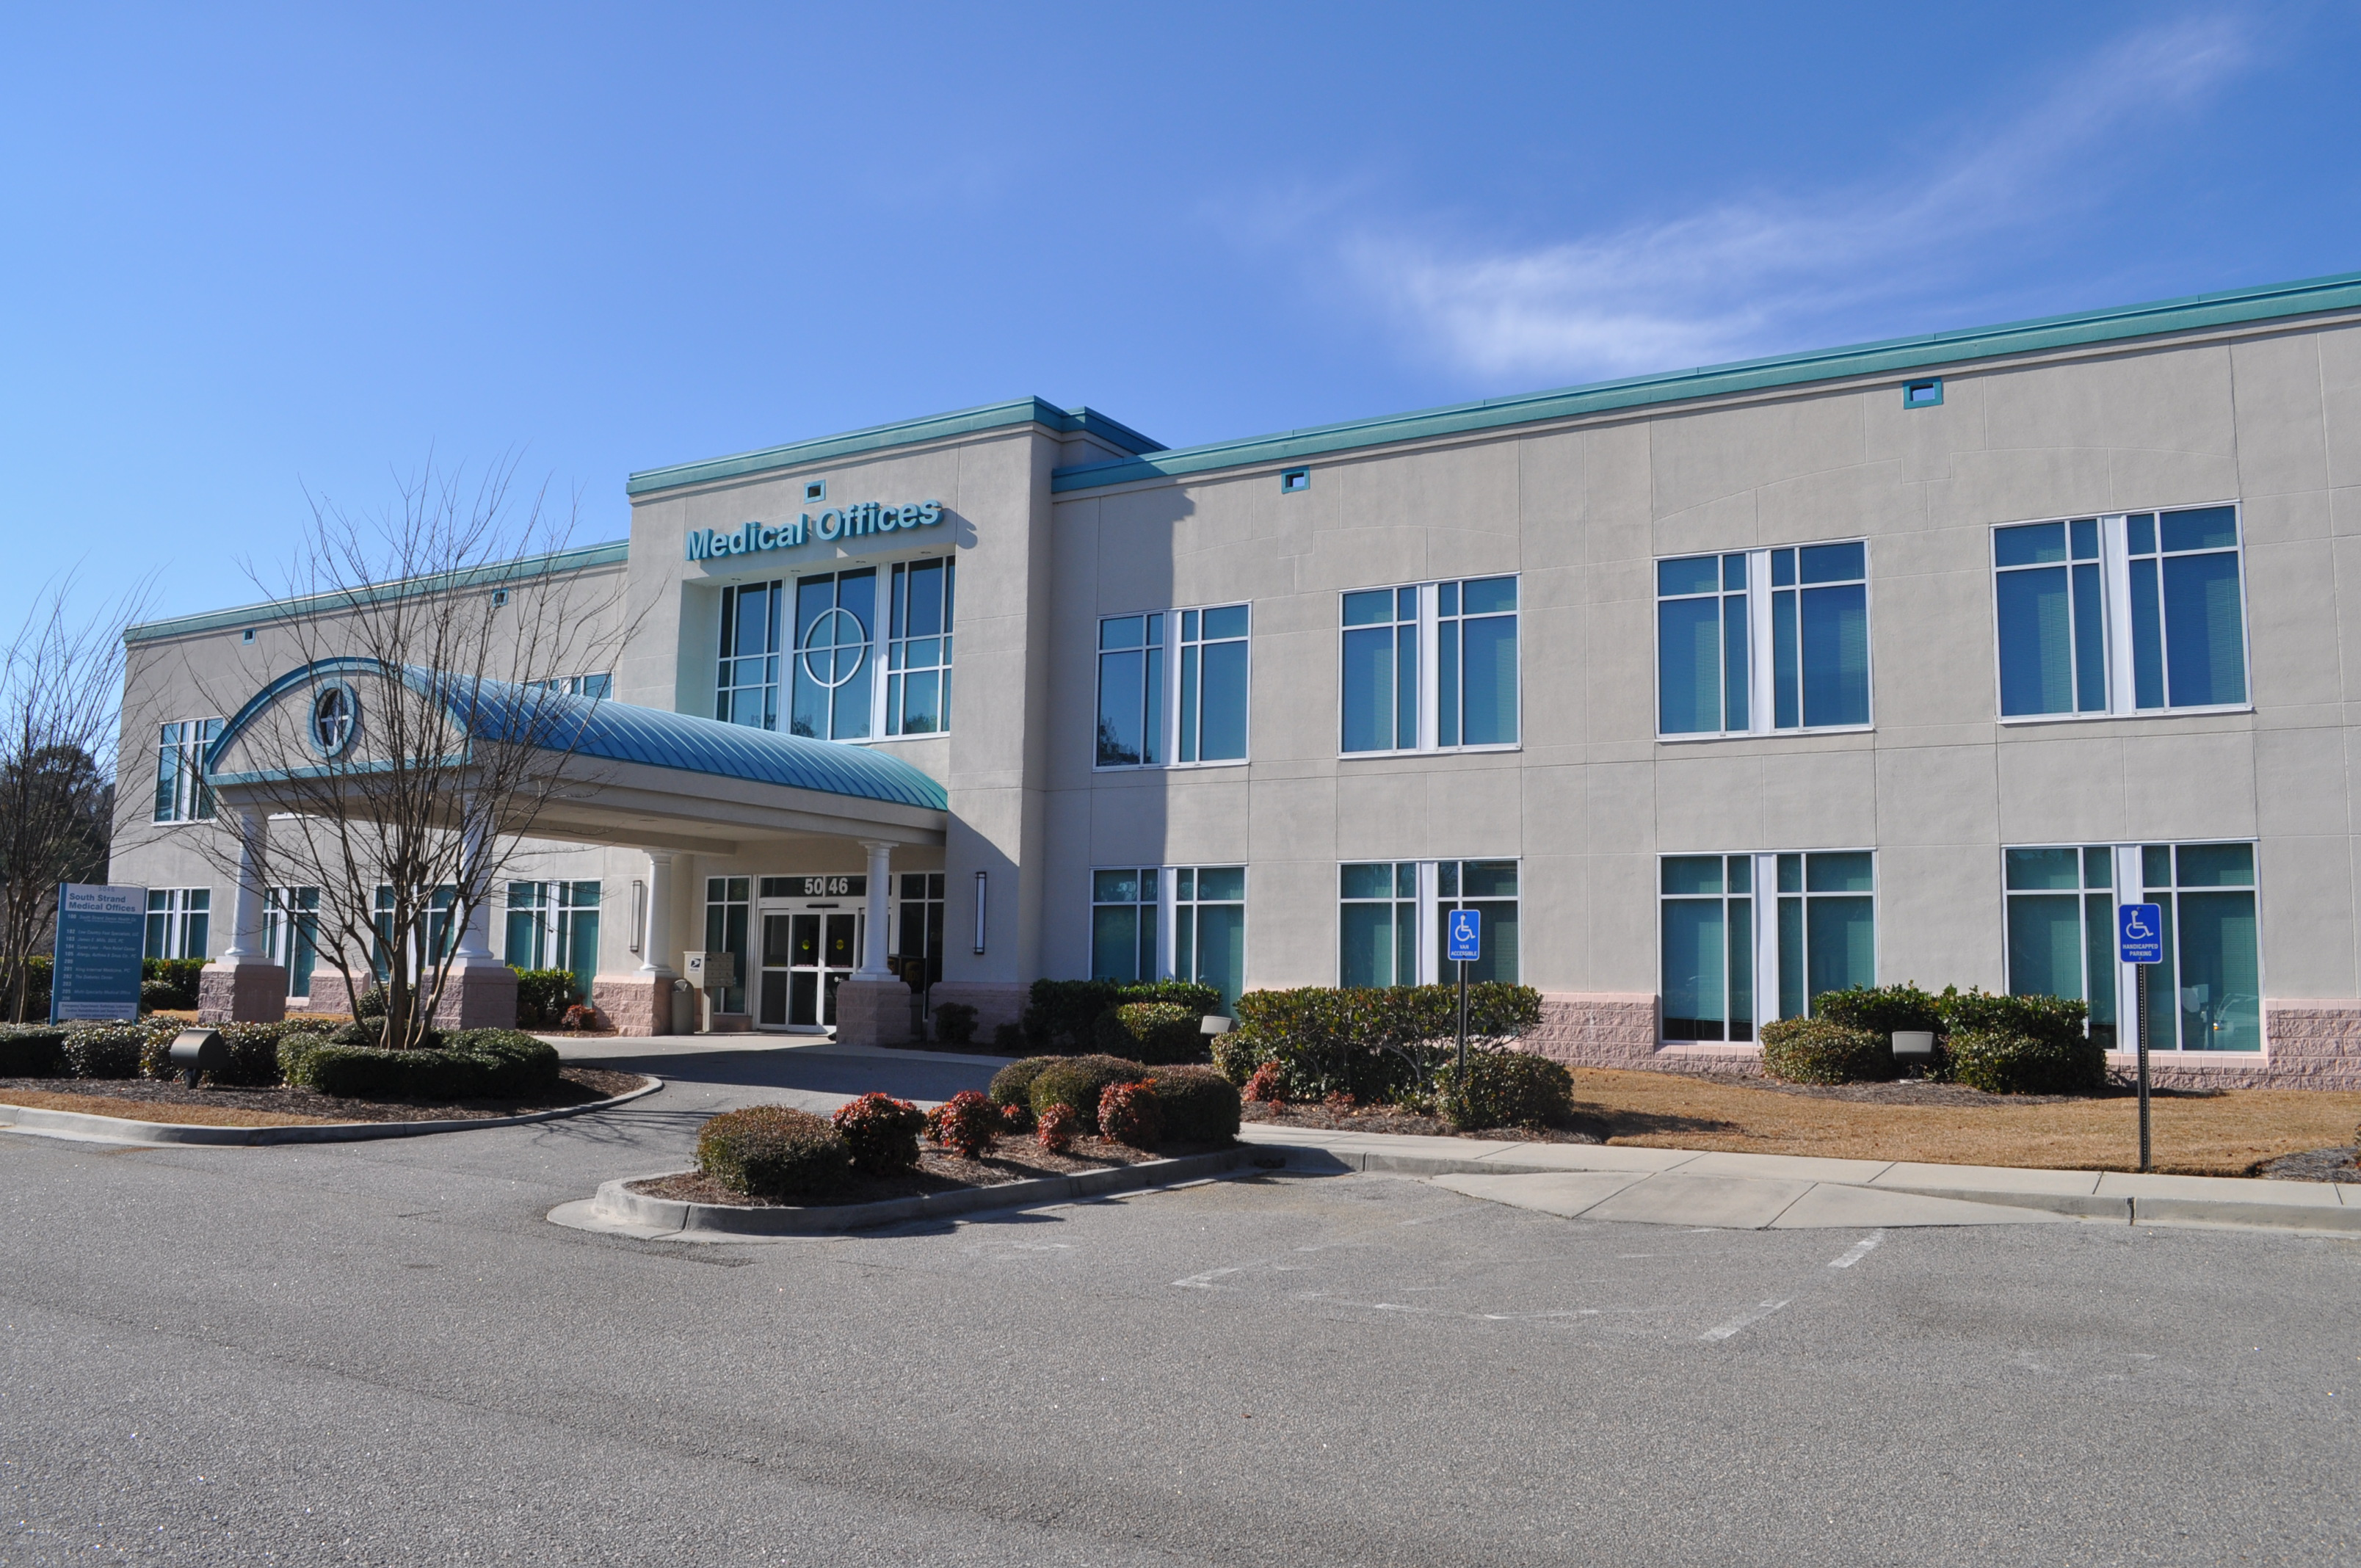 5046 Highway 17 Bypass,South Carolina,29577,Office / Medical,South Strand Medical Offices,Highway 17 Bypass,1410